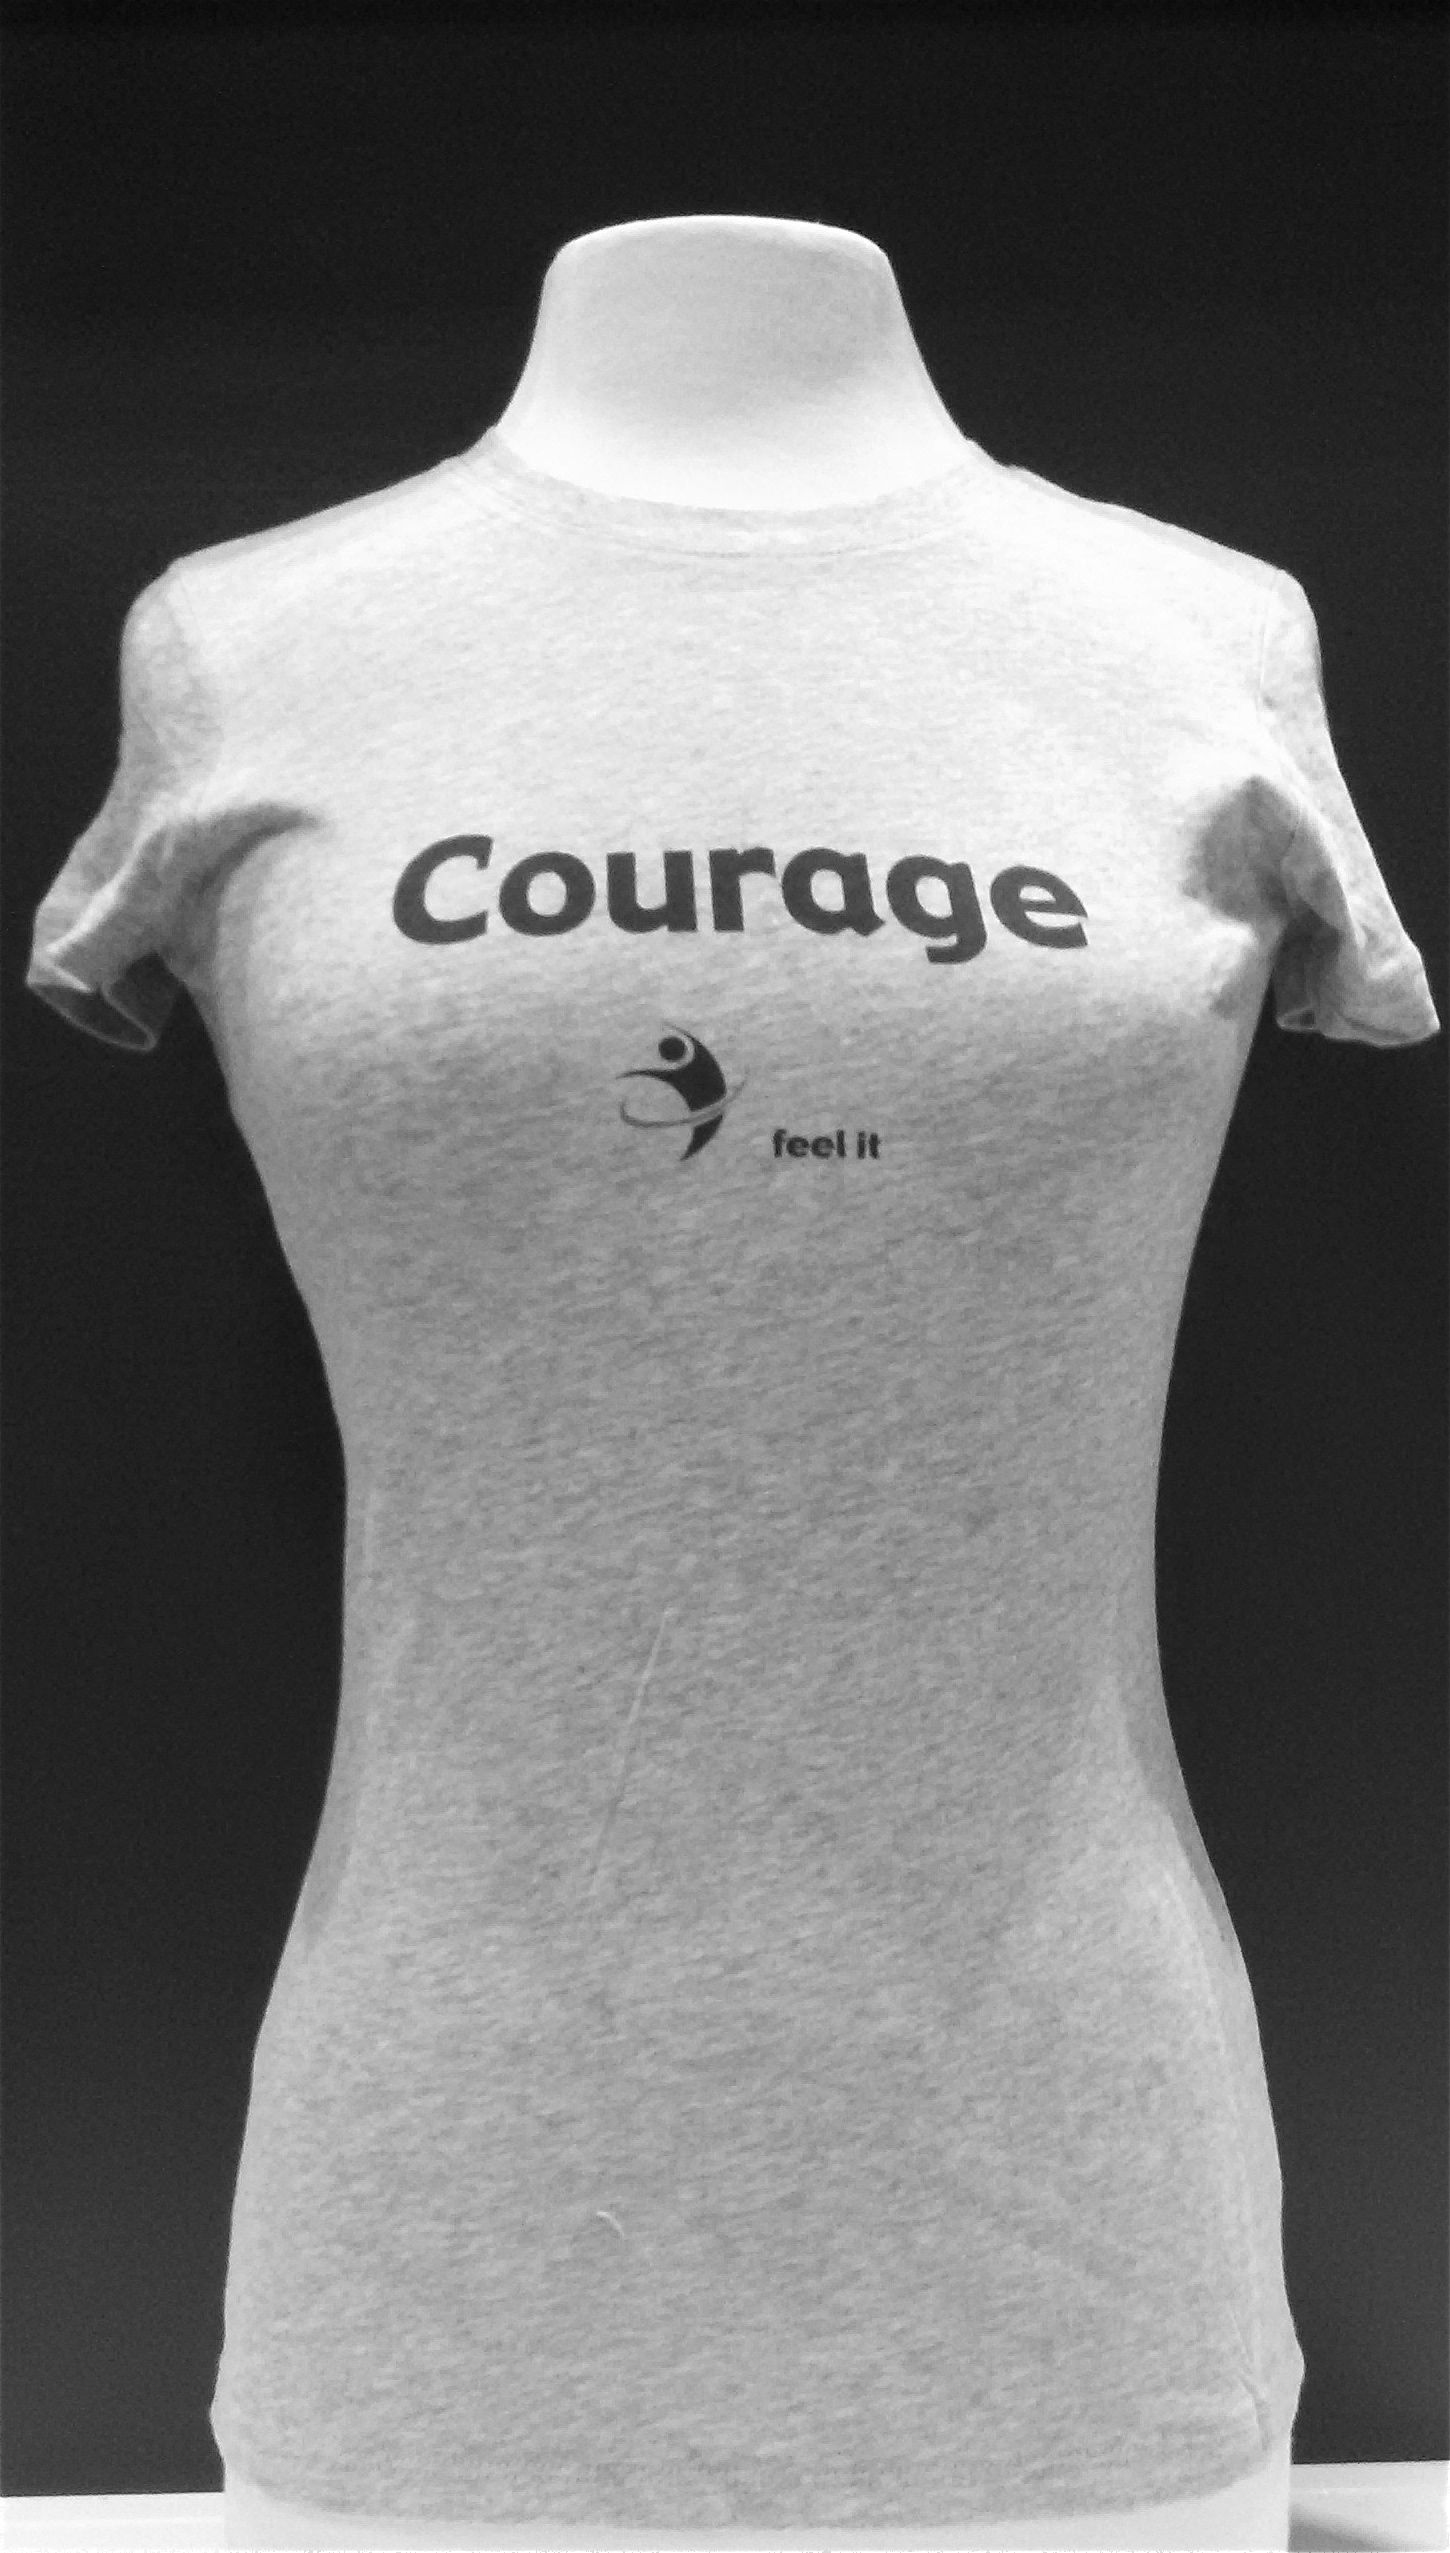 Courage T Shirt Perception